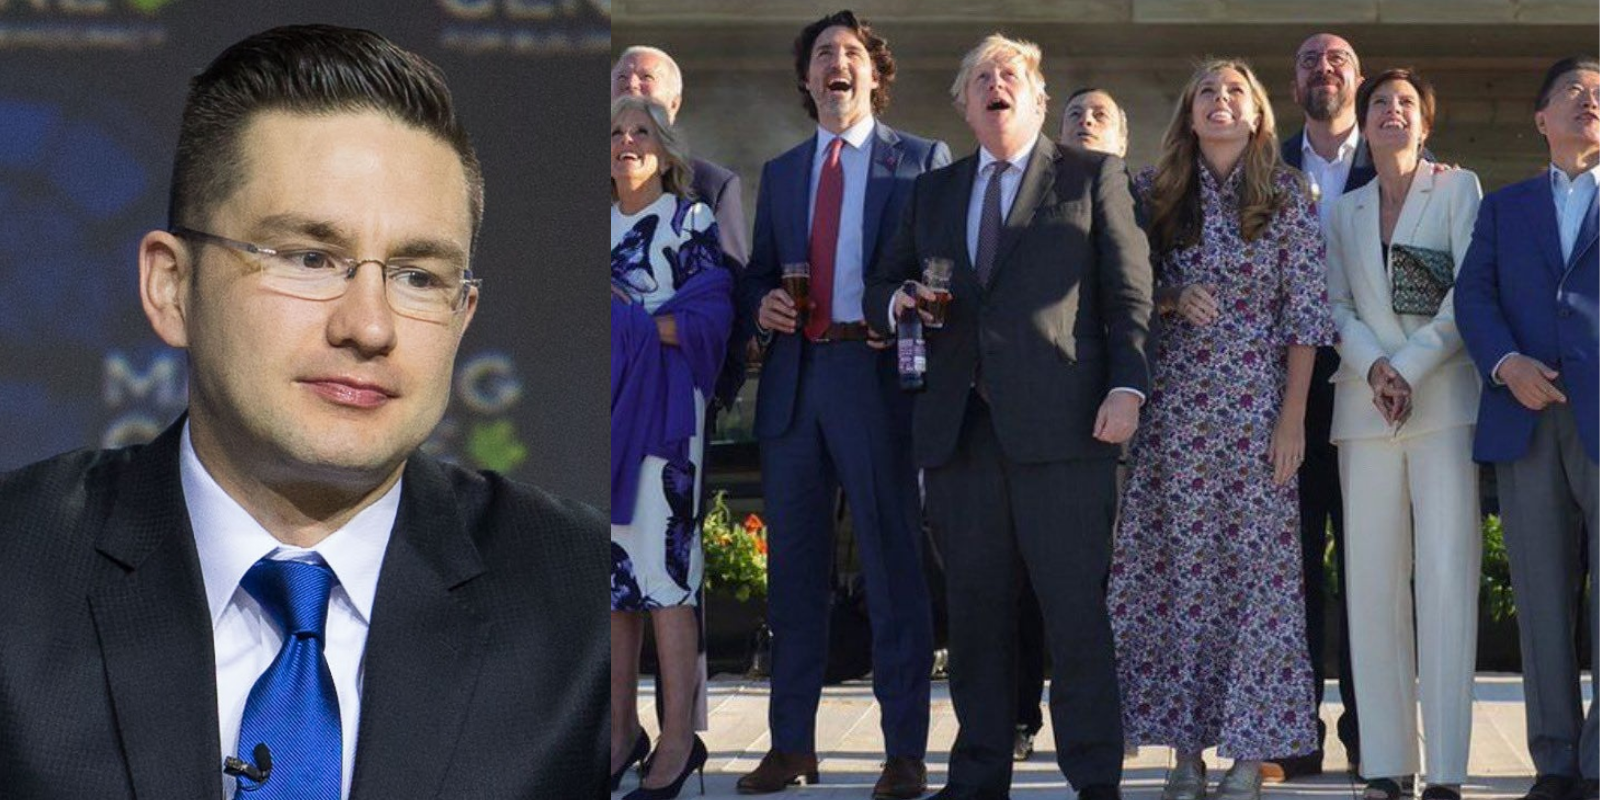 Pierre Poilievre ROASTS Trudeau for being a 'one-dose, maskless hypocrite'